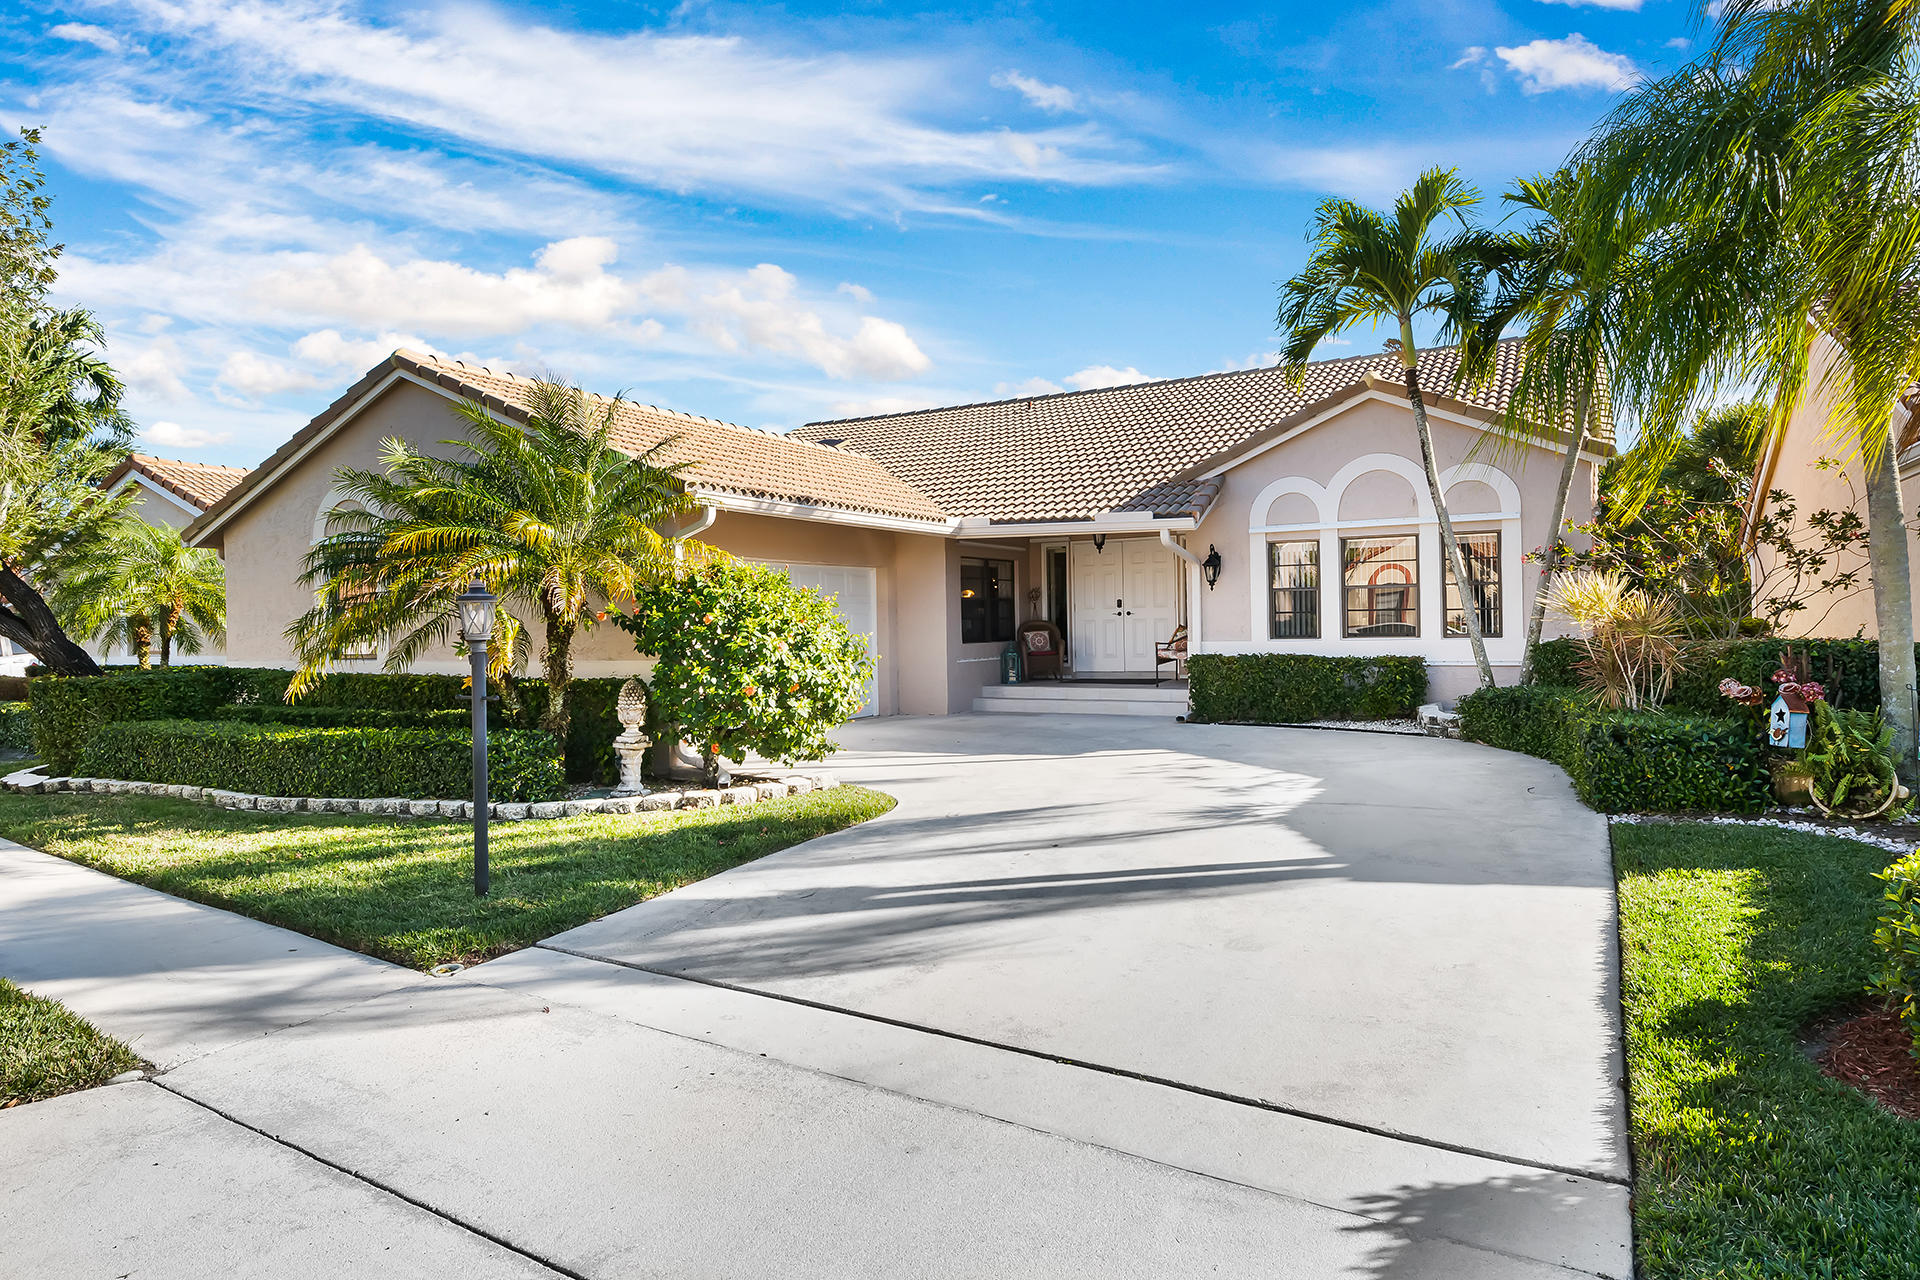 Home for sale in Wedgewood Boca Raton Florida